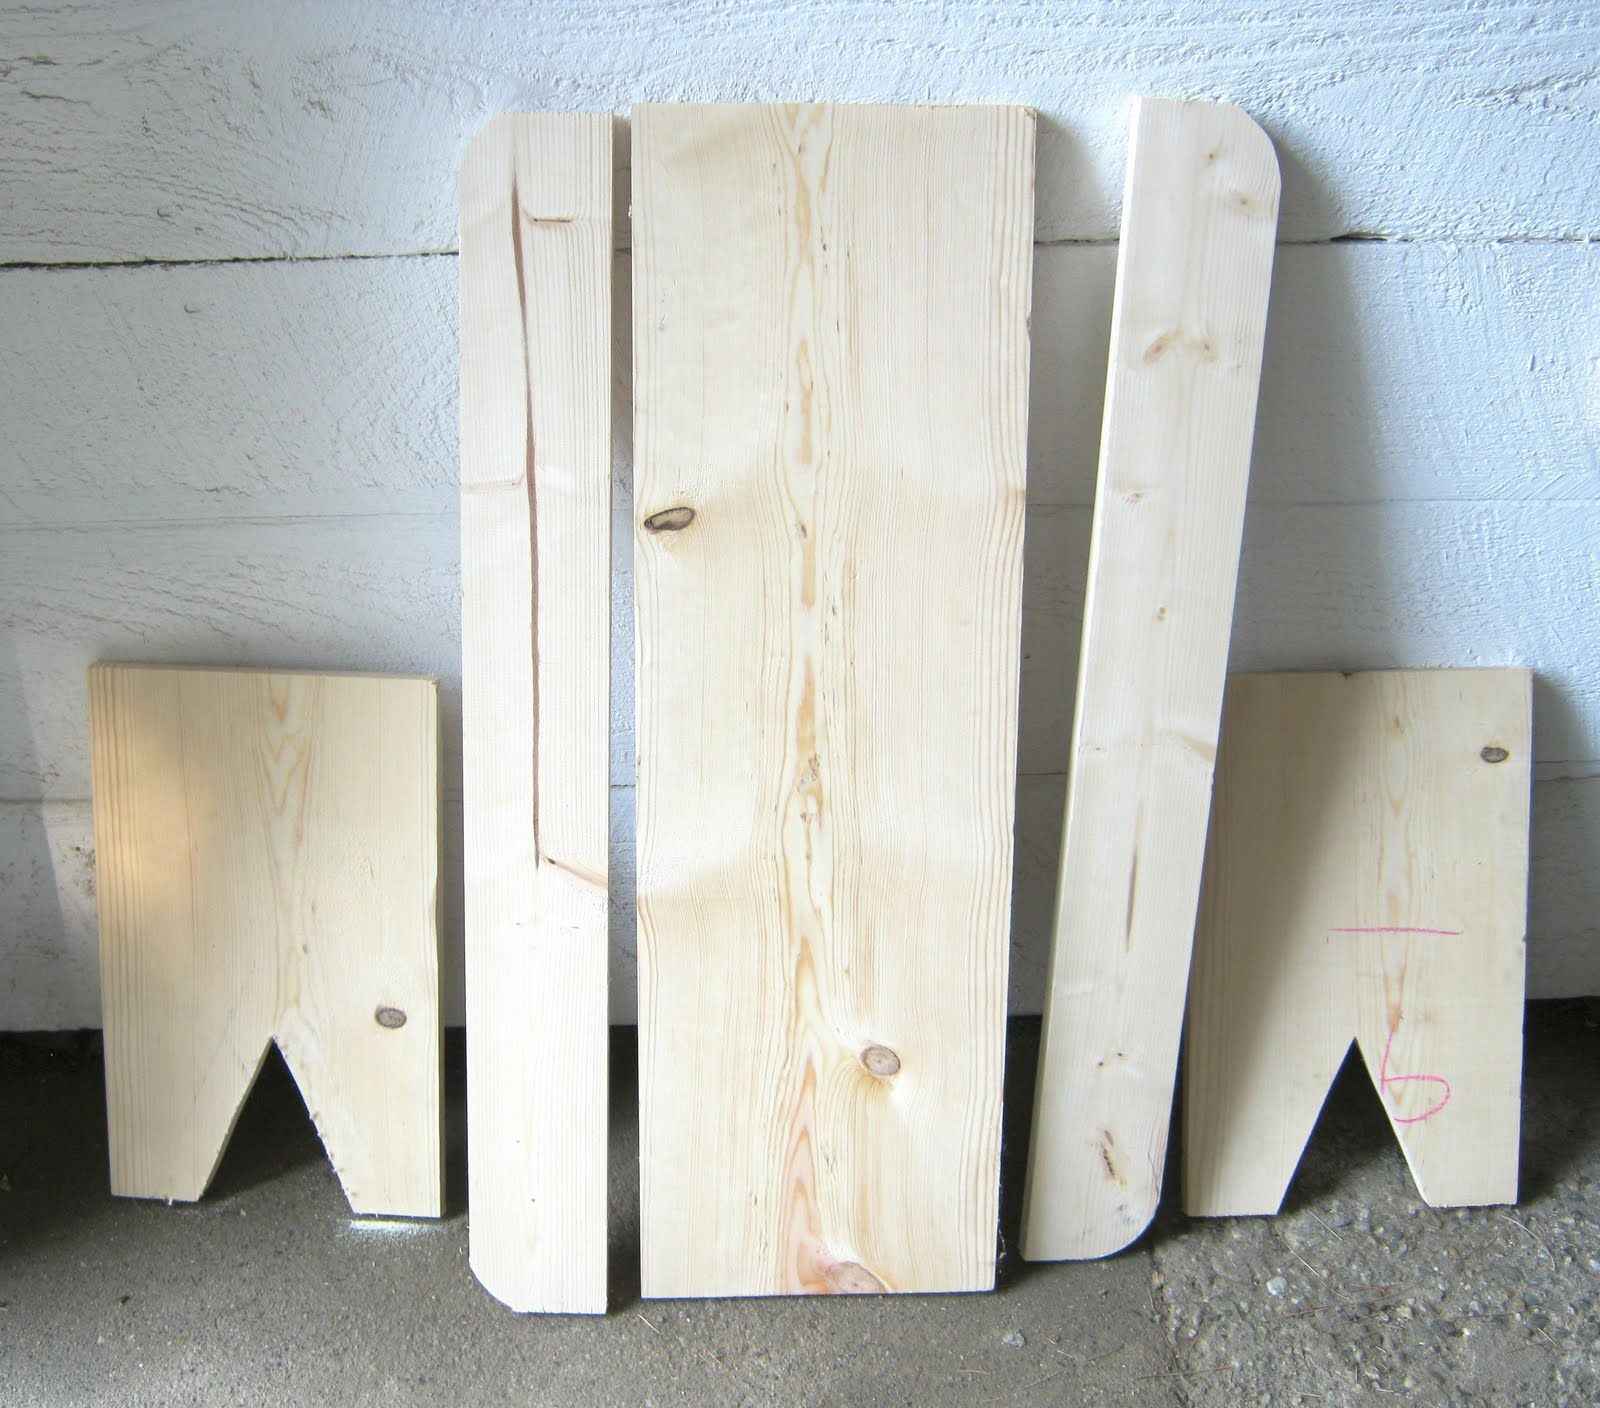 Primitive wood crafts to make - Can T Stop Making Things Simple Bench Simple Woodworking Projectsdiy Benchwood Ideaspallet Ideaswood Craftsprimitive Craftsfurniture